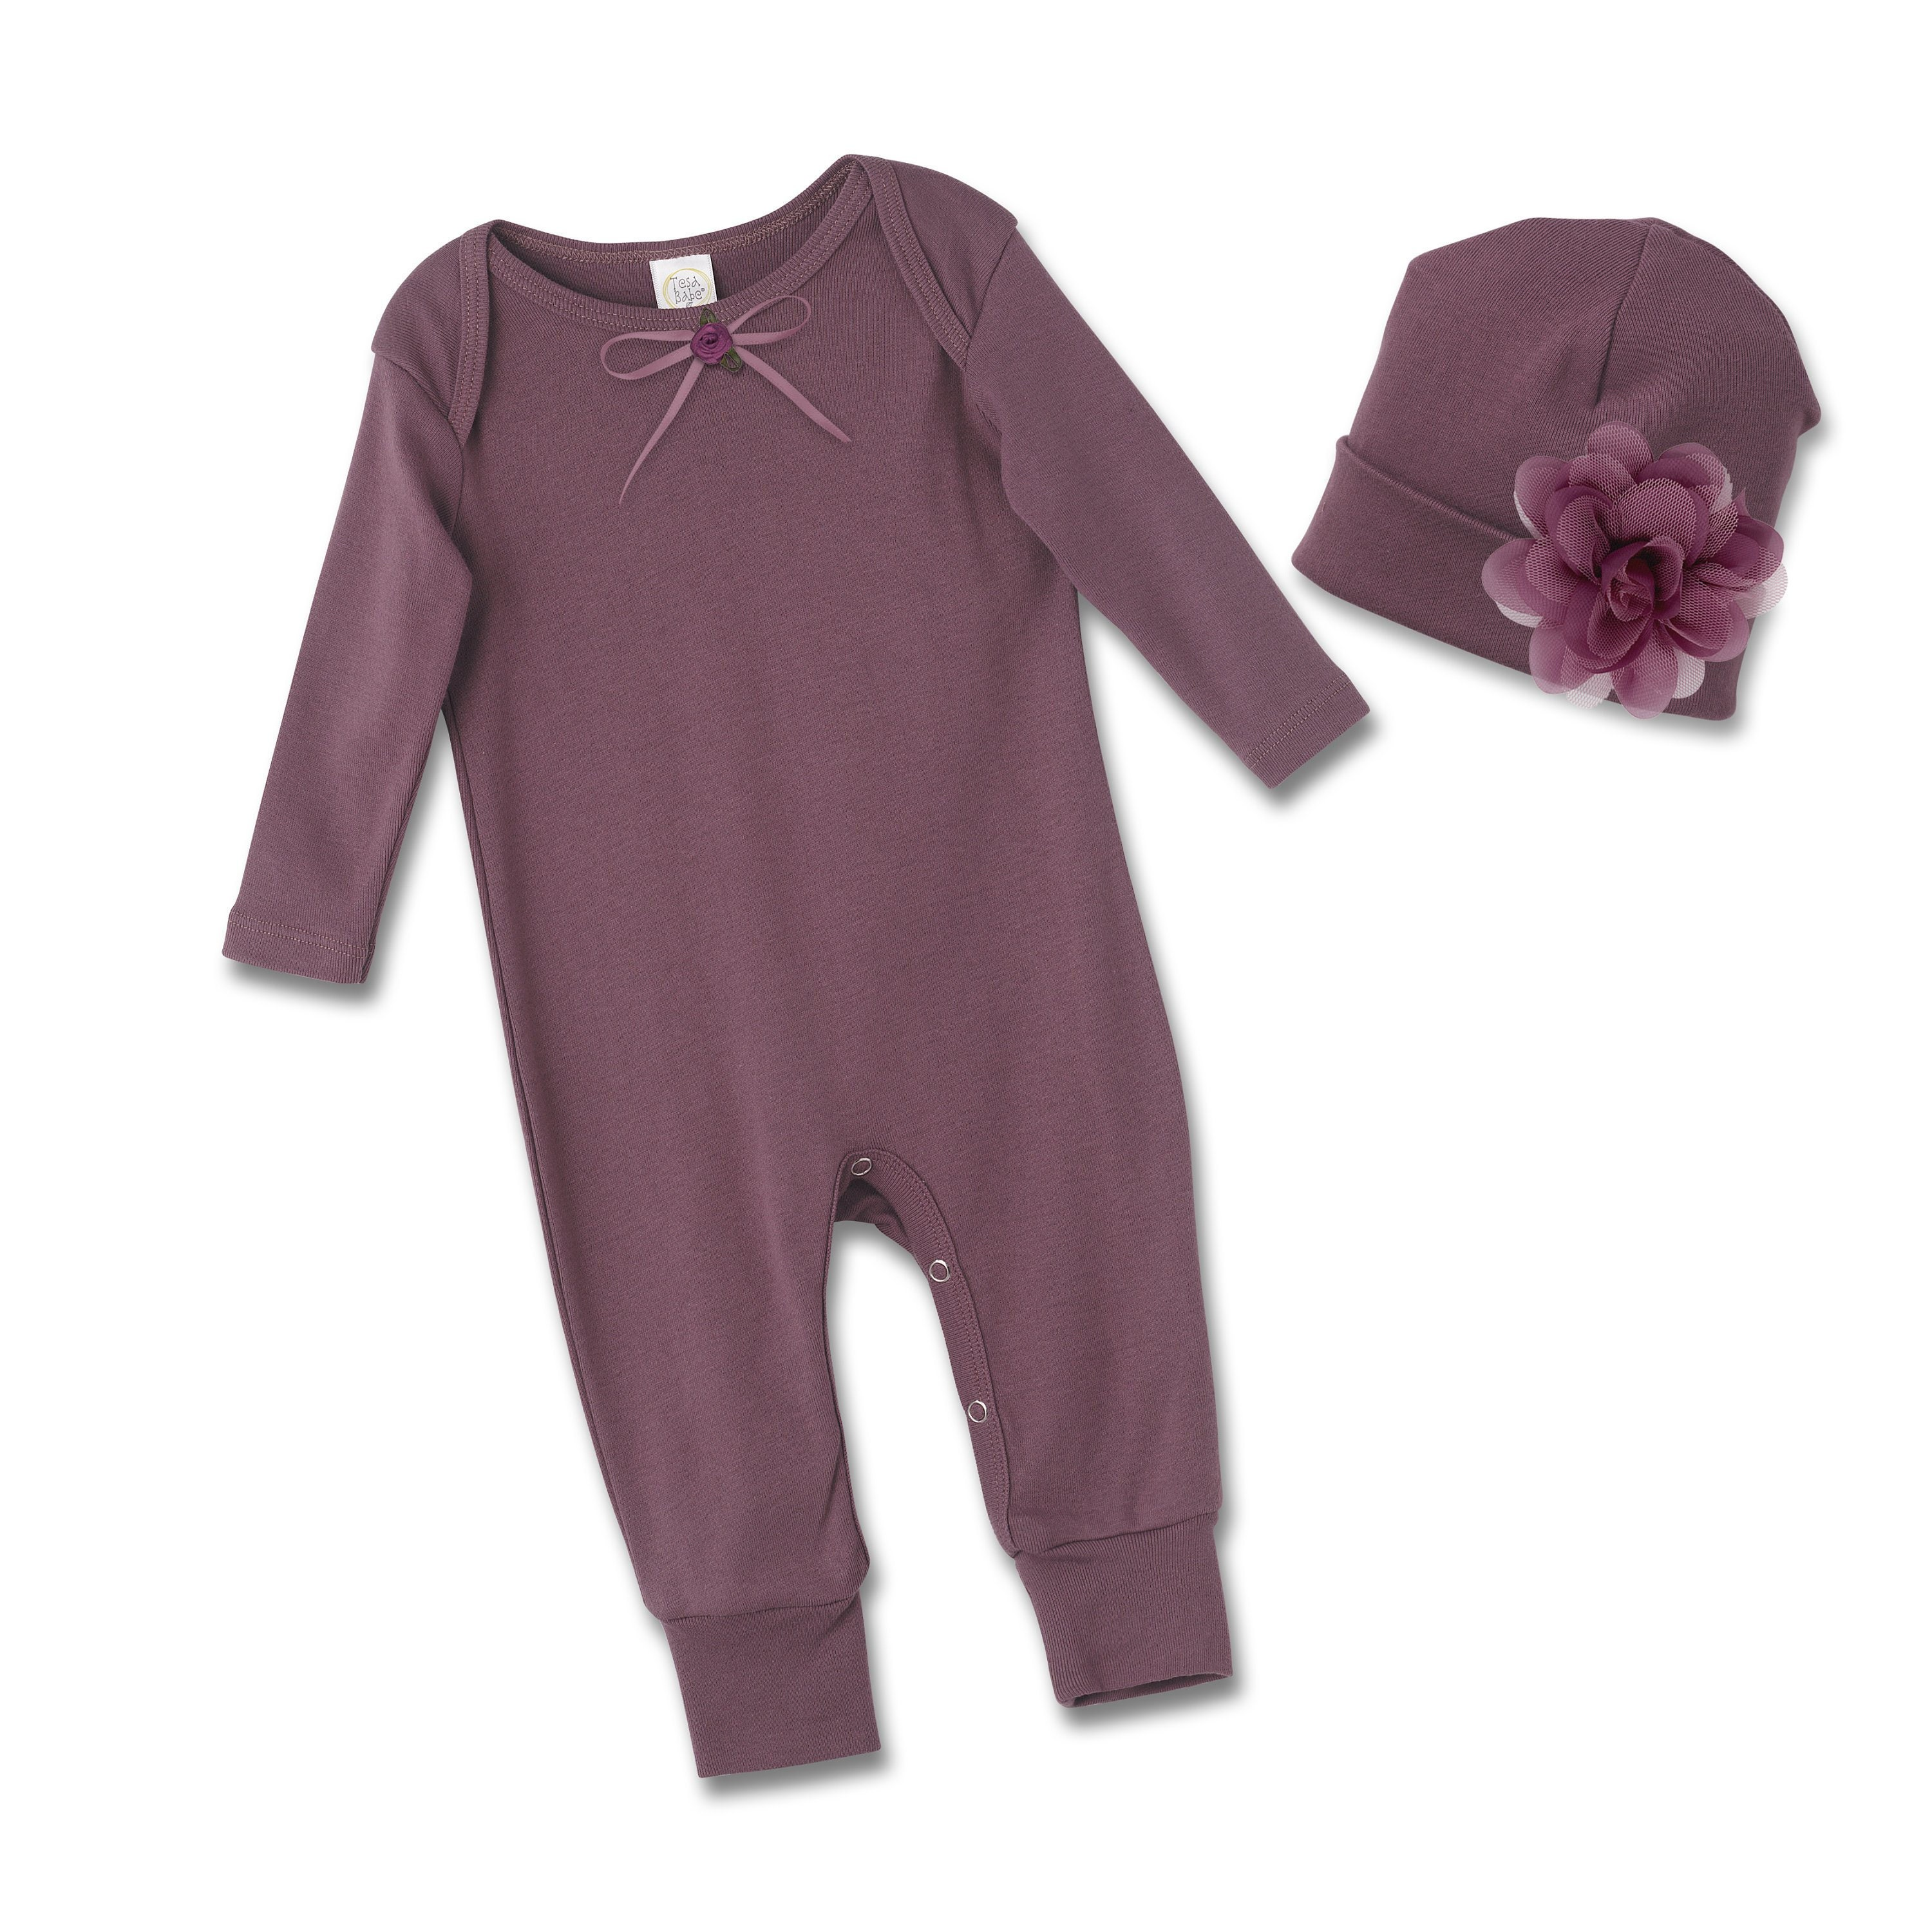 f872a4a3241 Newborn Baby Girl Coming Home Outfit